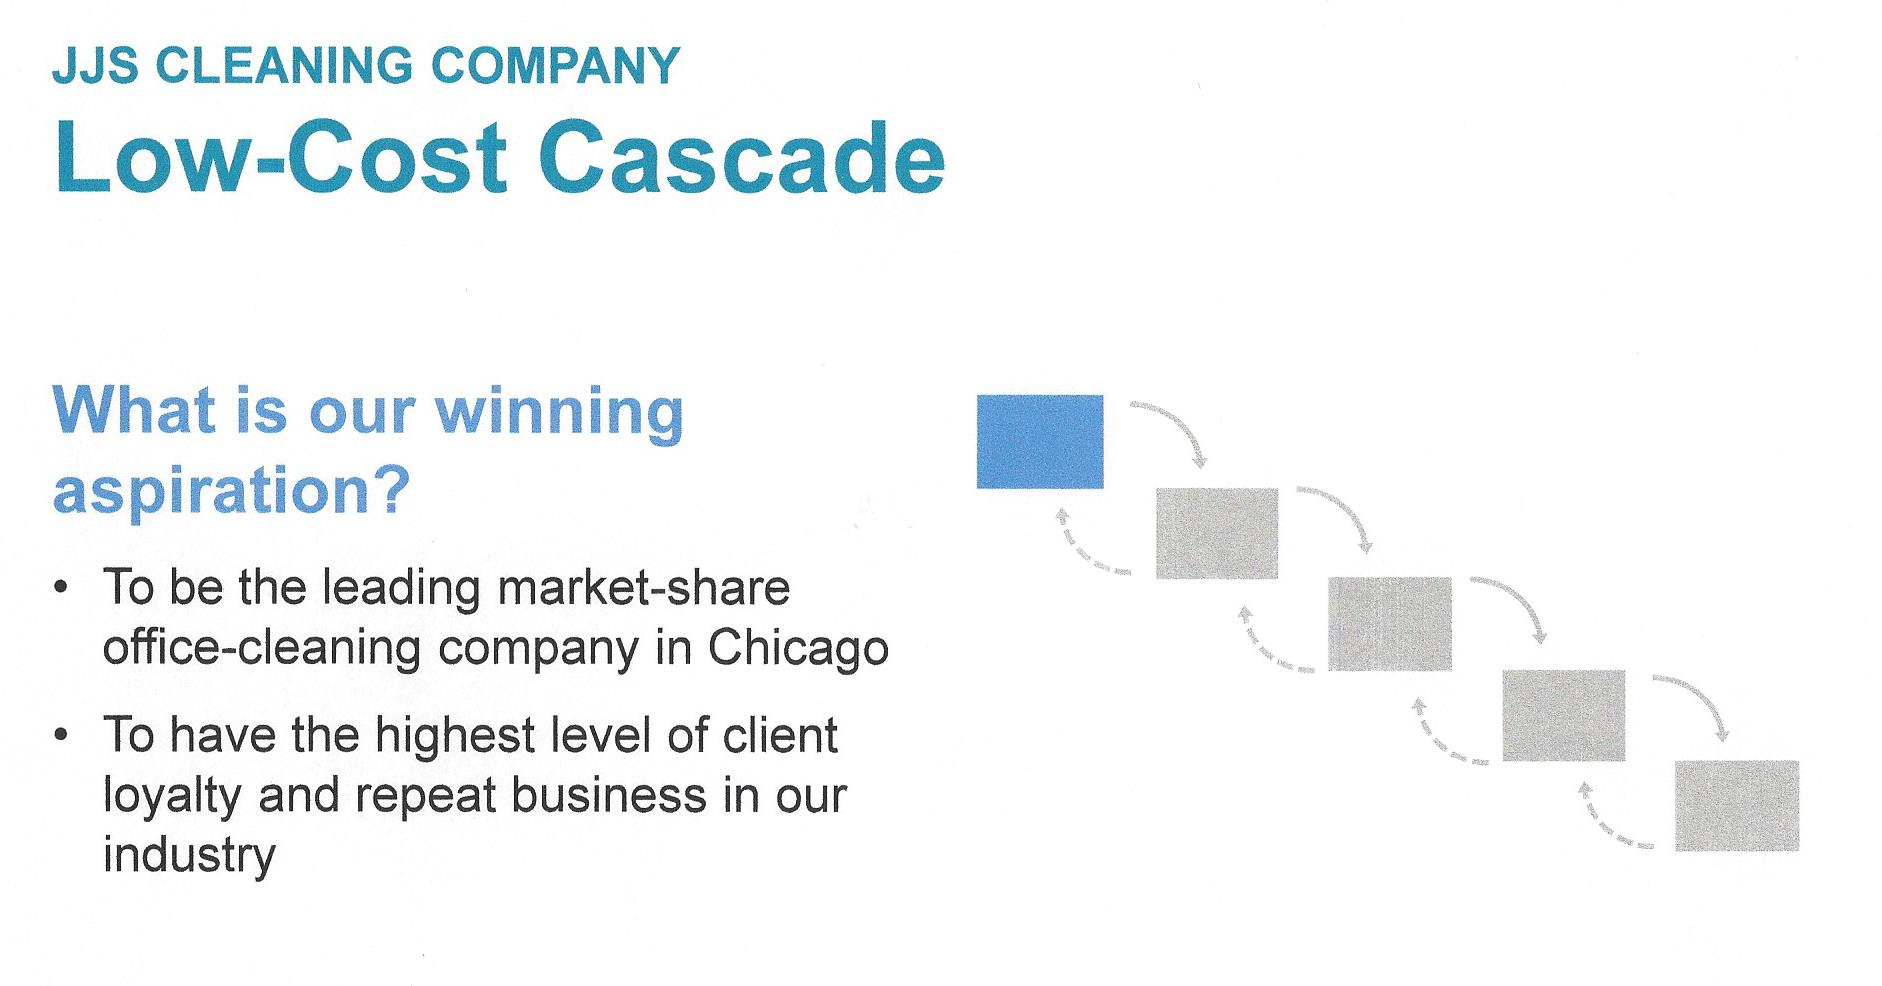 Play to Win - Low-Cost Cascade - Winning Aspiration